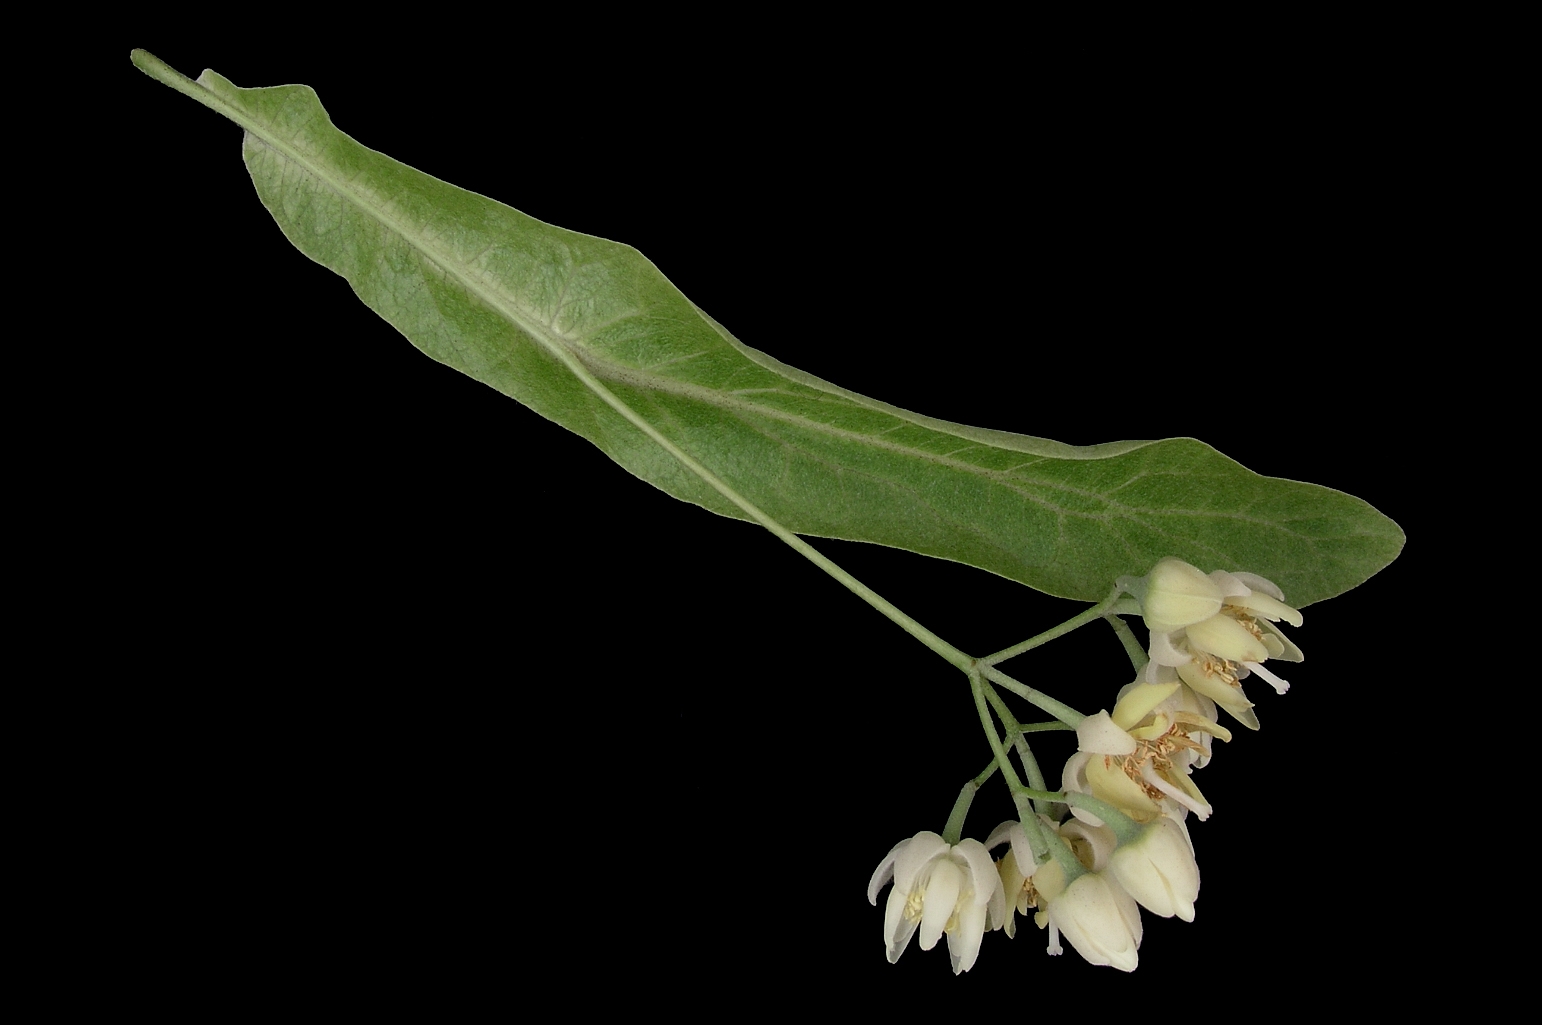 Pendulous cyme with a long peduncle partly fused to the lower half of a long bract